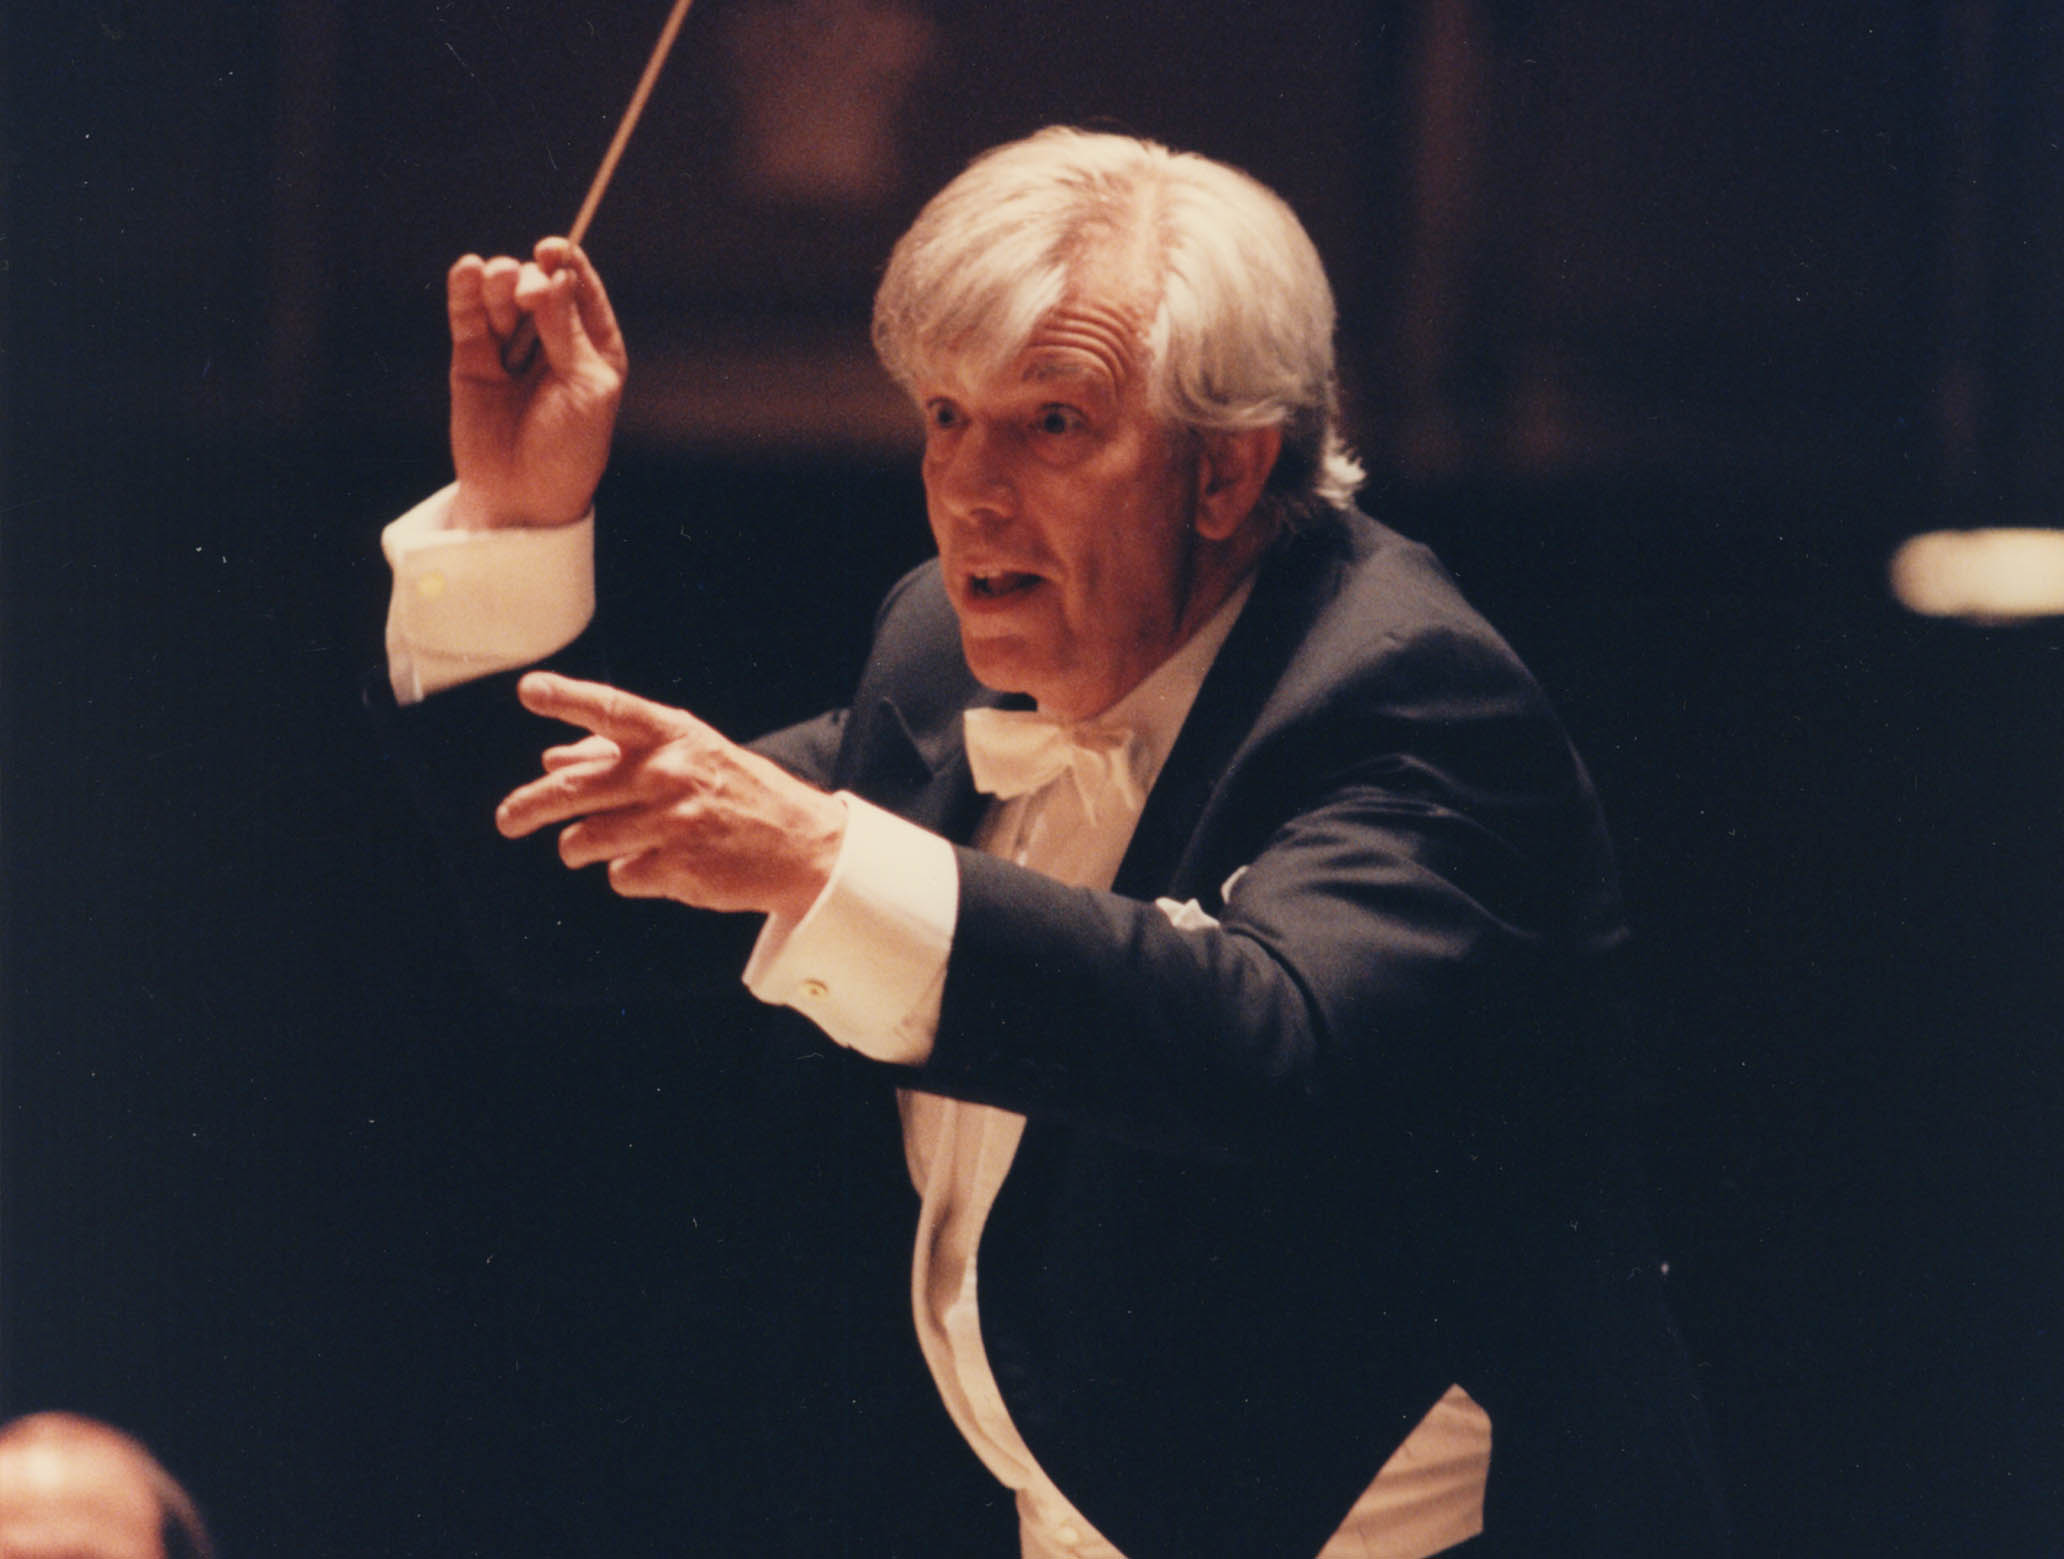 Christoph von Dohnányi is conducting. He is very animated, and almost smiling.